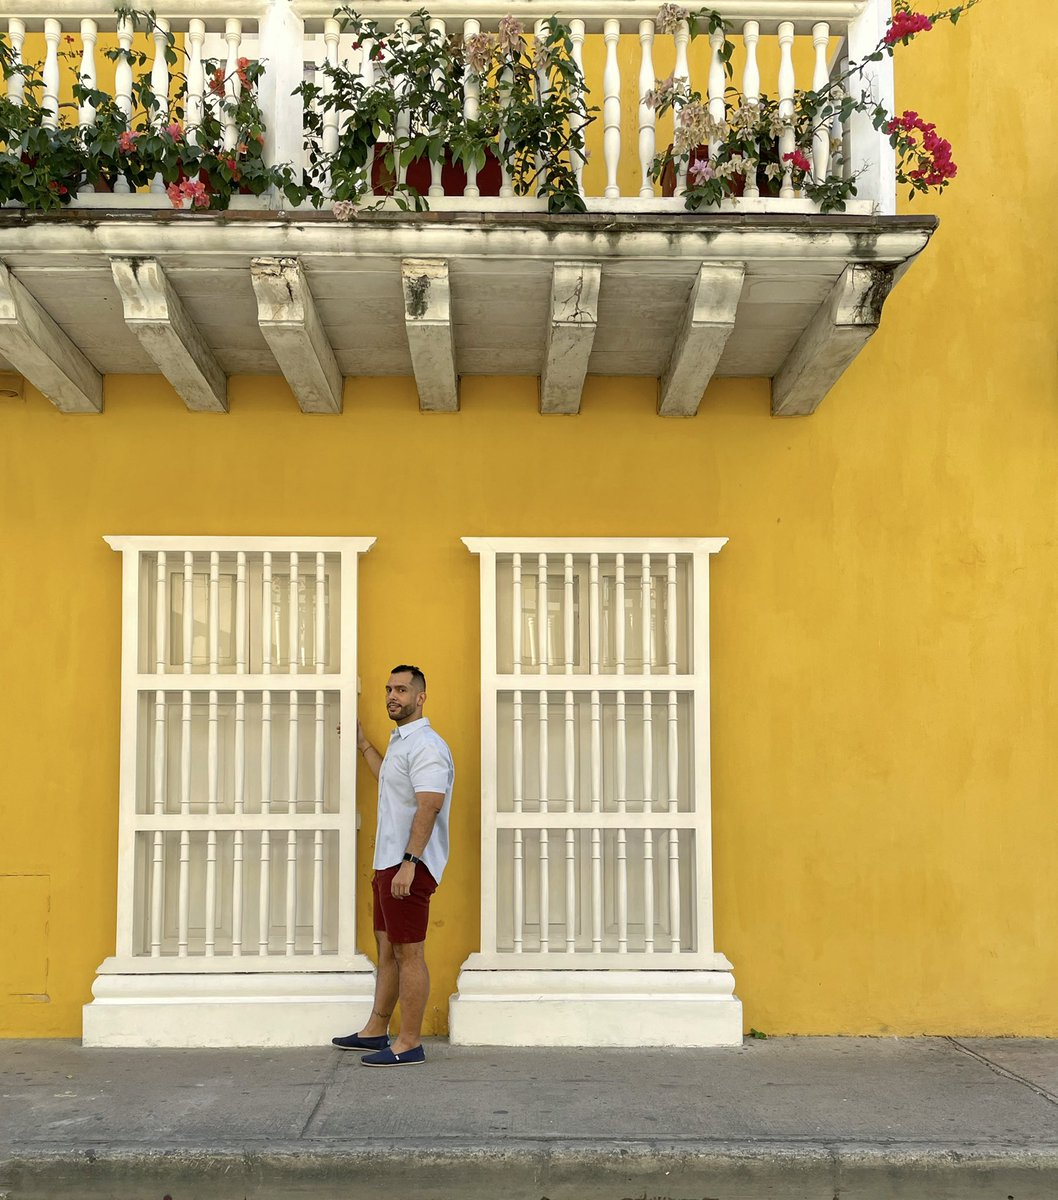 And it was all yellow 📒📒📒   #hellofrom  #cartagena  #yellow  #sunday